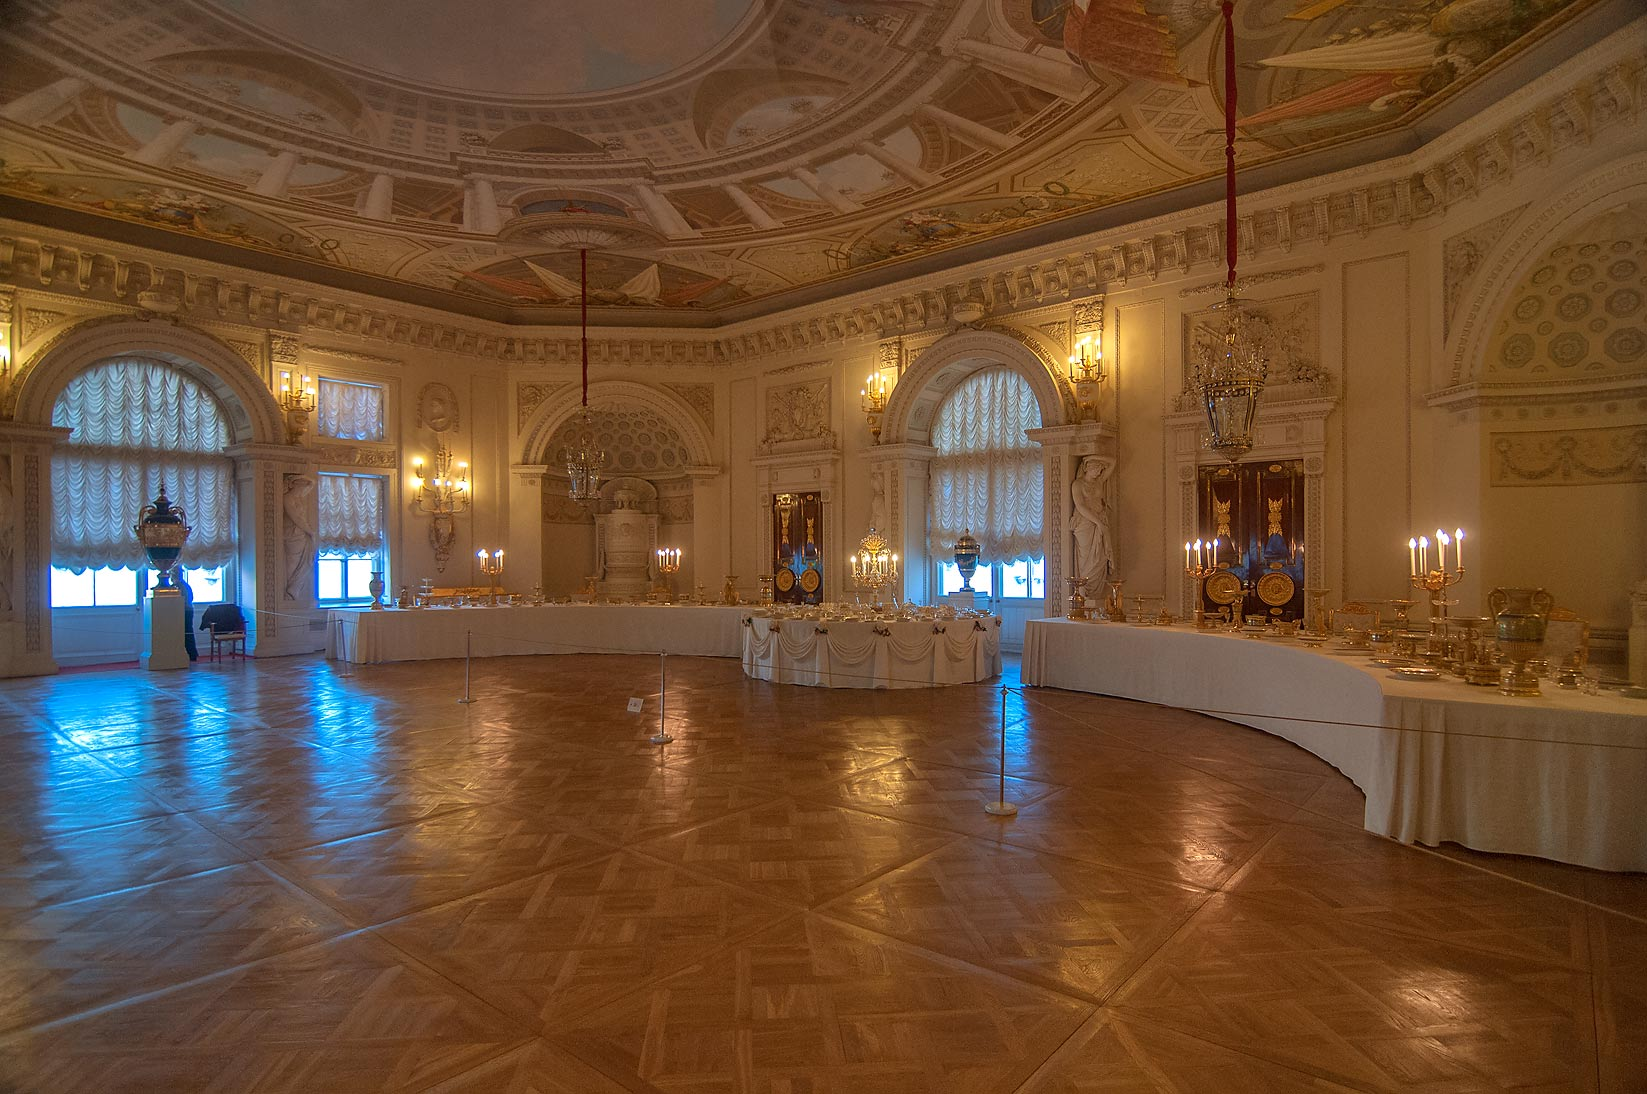 A dining room in Pavlovsky Palace. Pavlovsk, a suburb of St.Petersburg, Russia